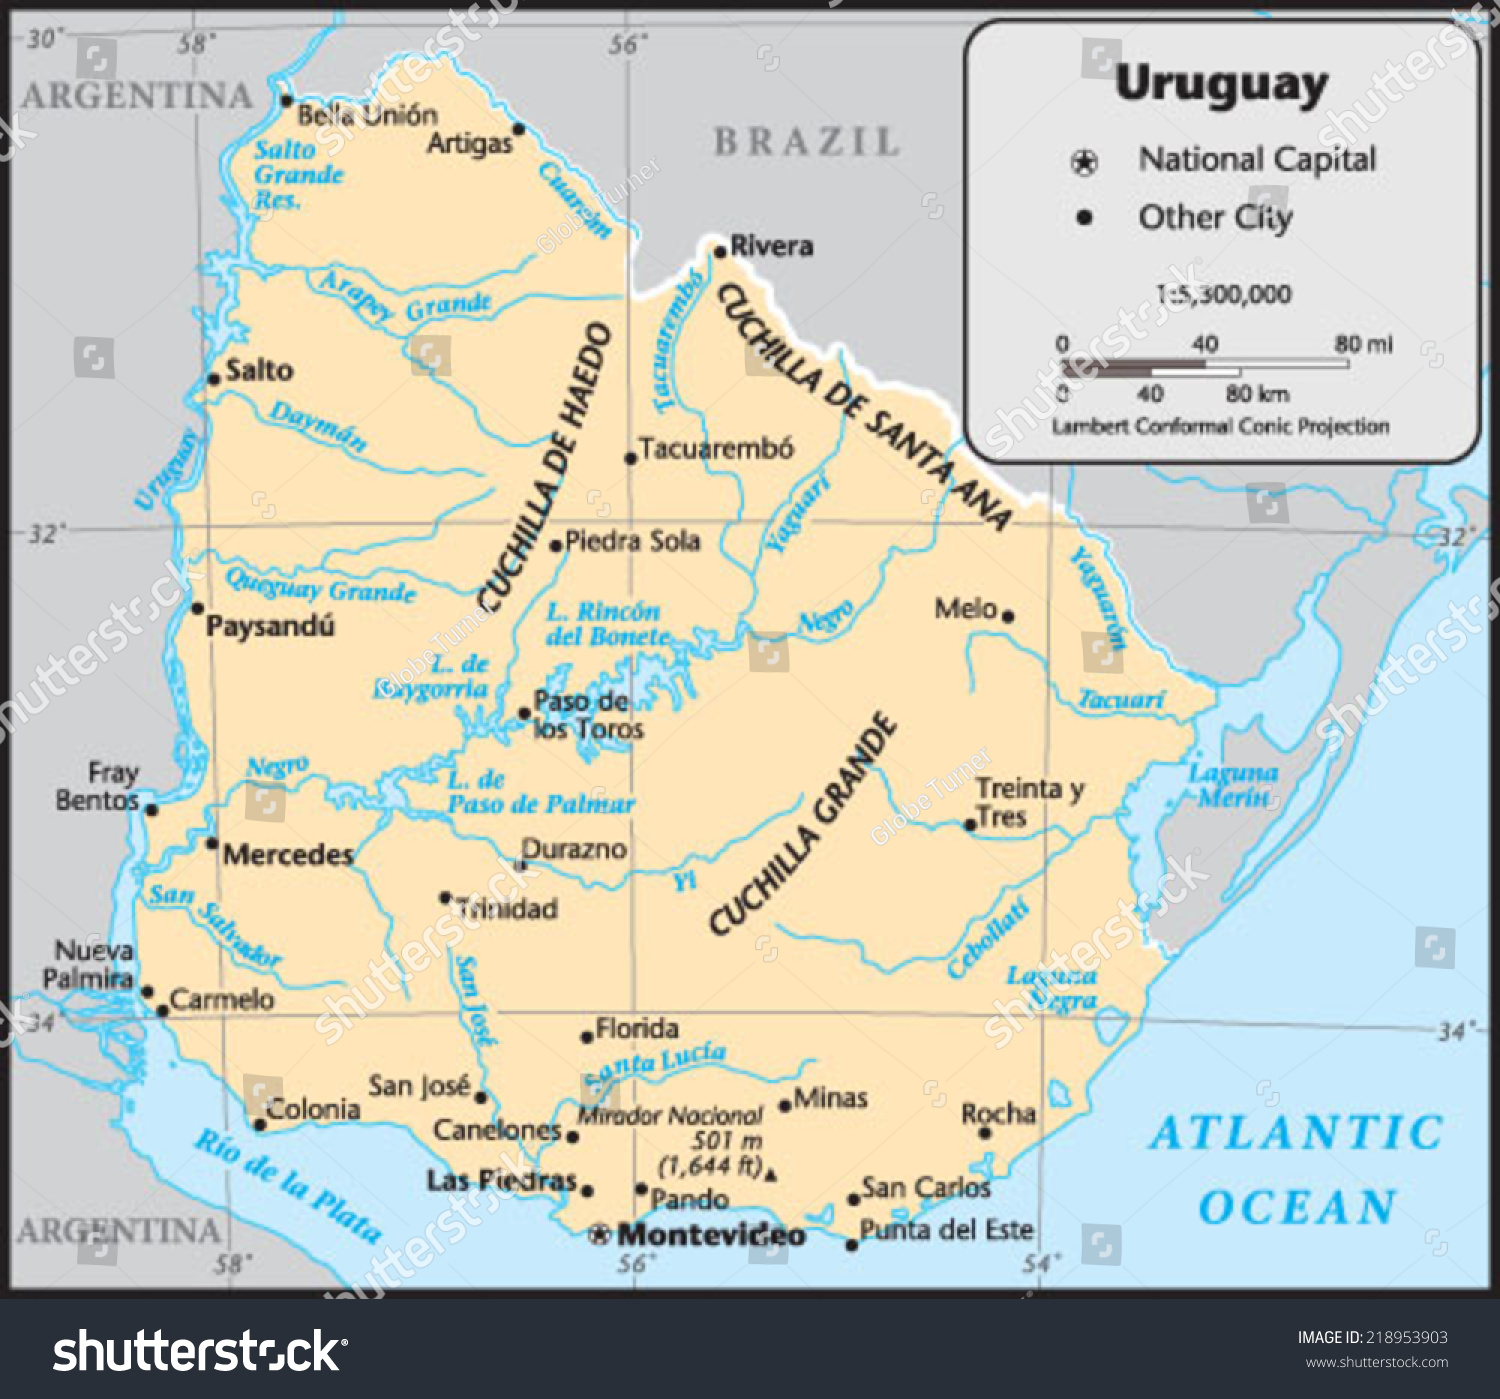 Uruguay Country Map Stock Vector 218953903 Shutterstock